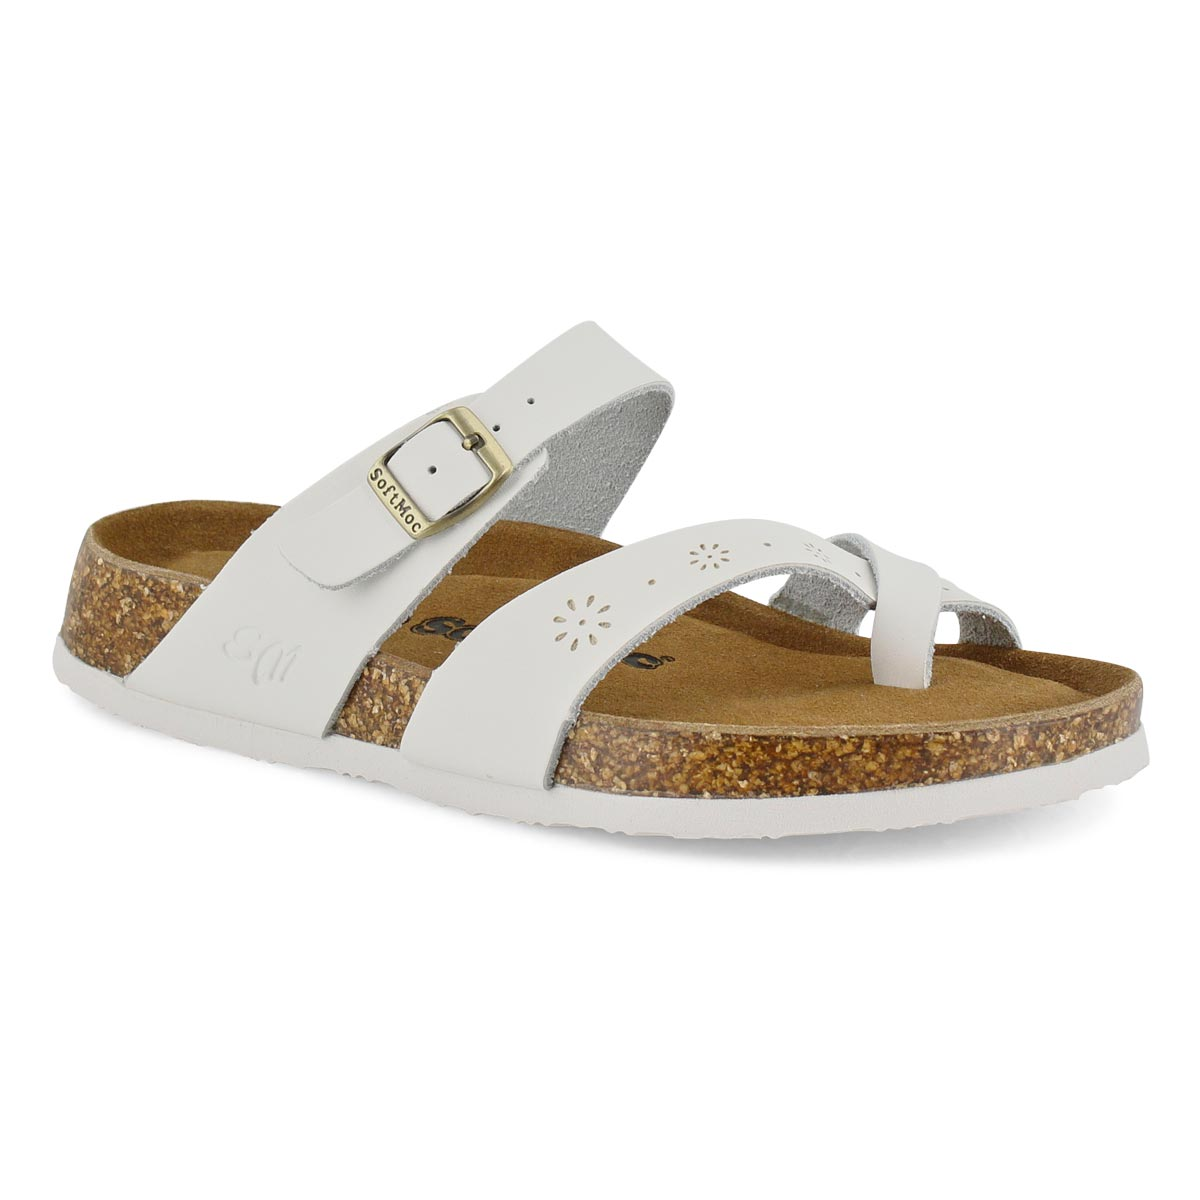 Women's ALICIA 5 white perforated leather sandal